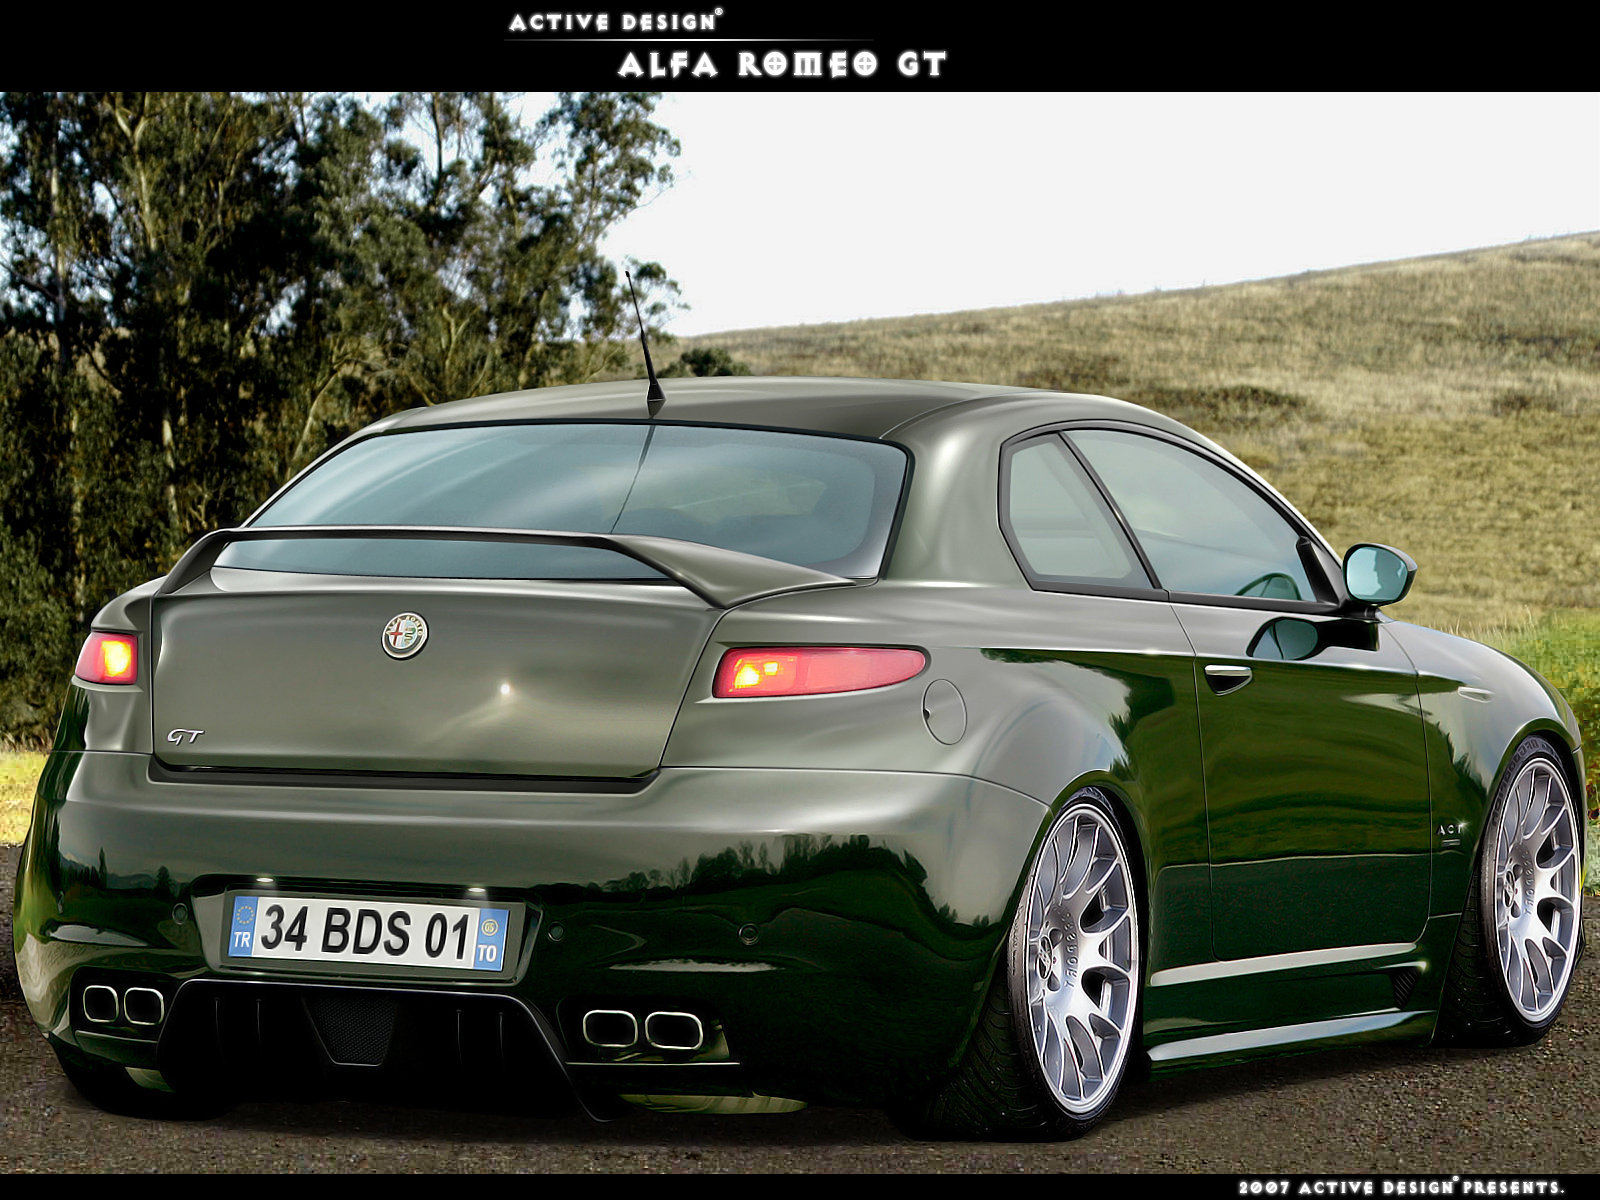 Alfa-Romeo GT photo 04